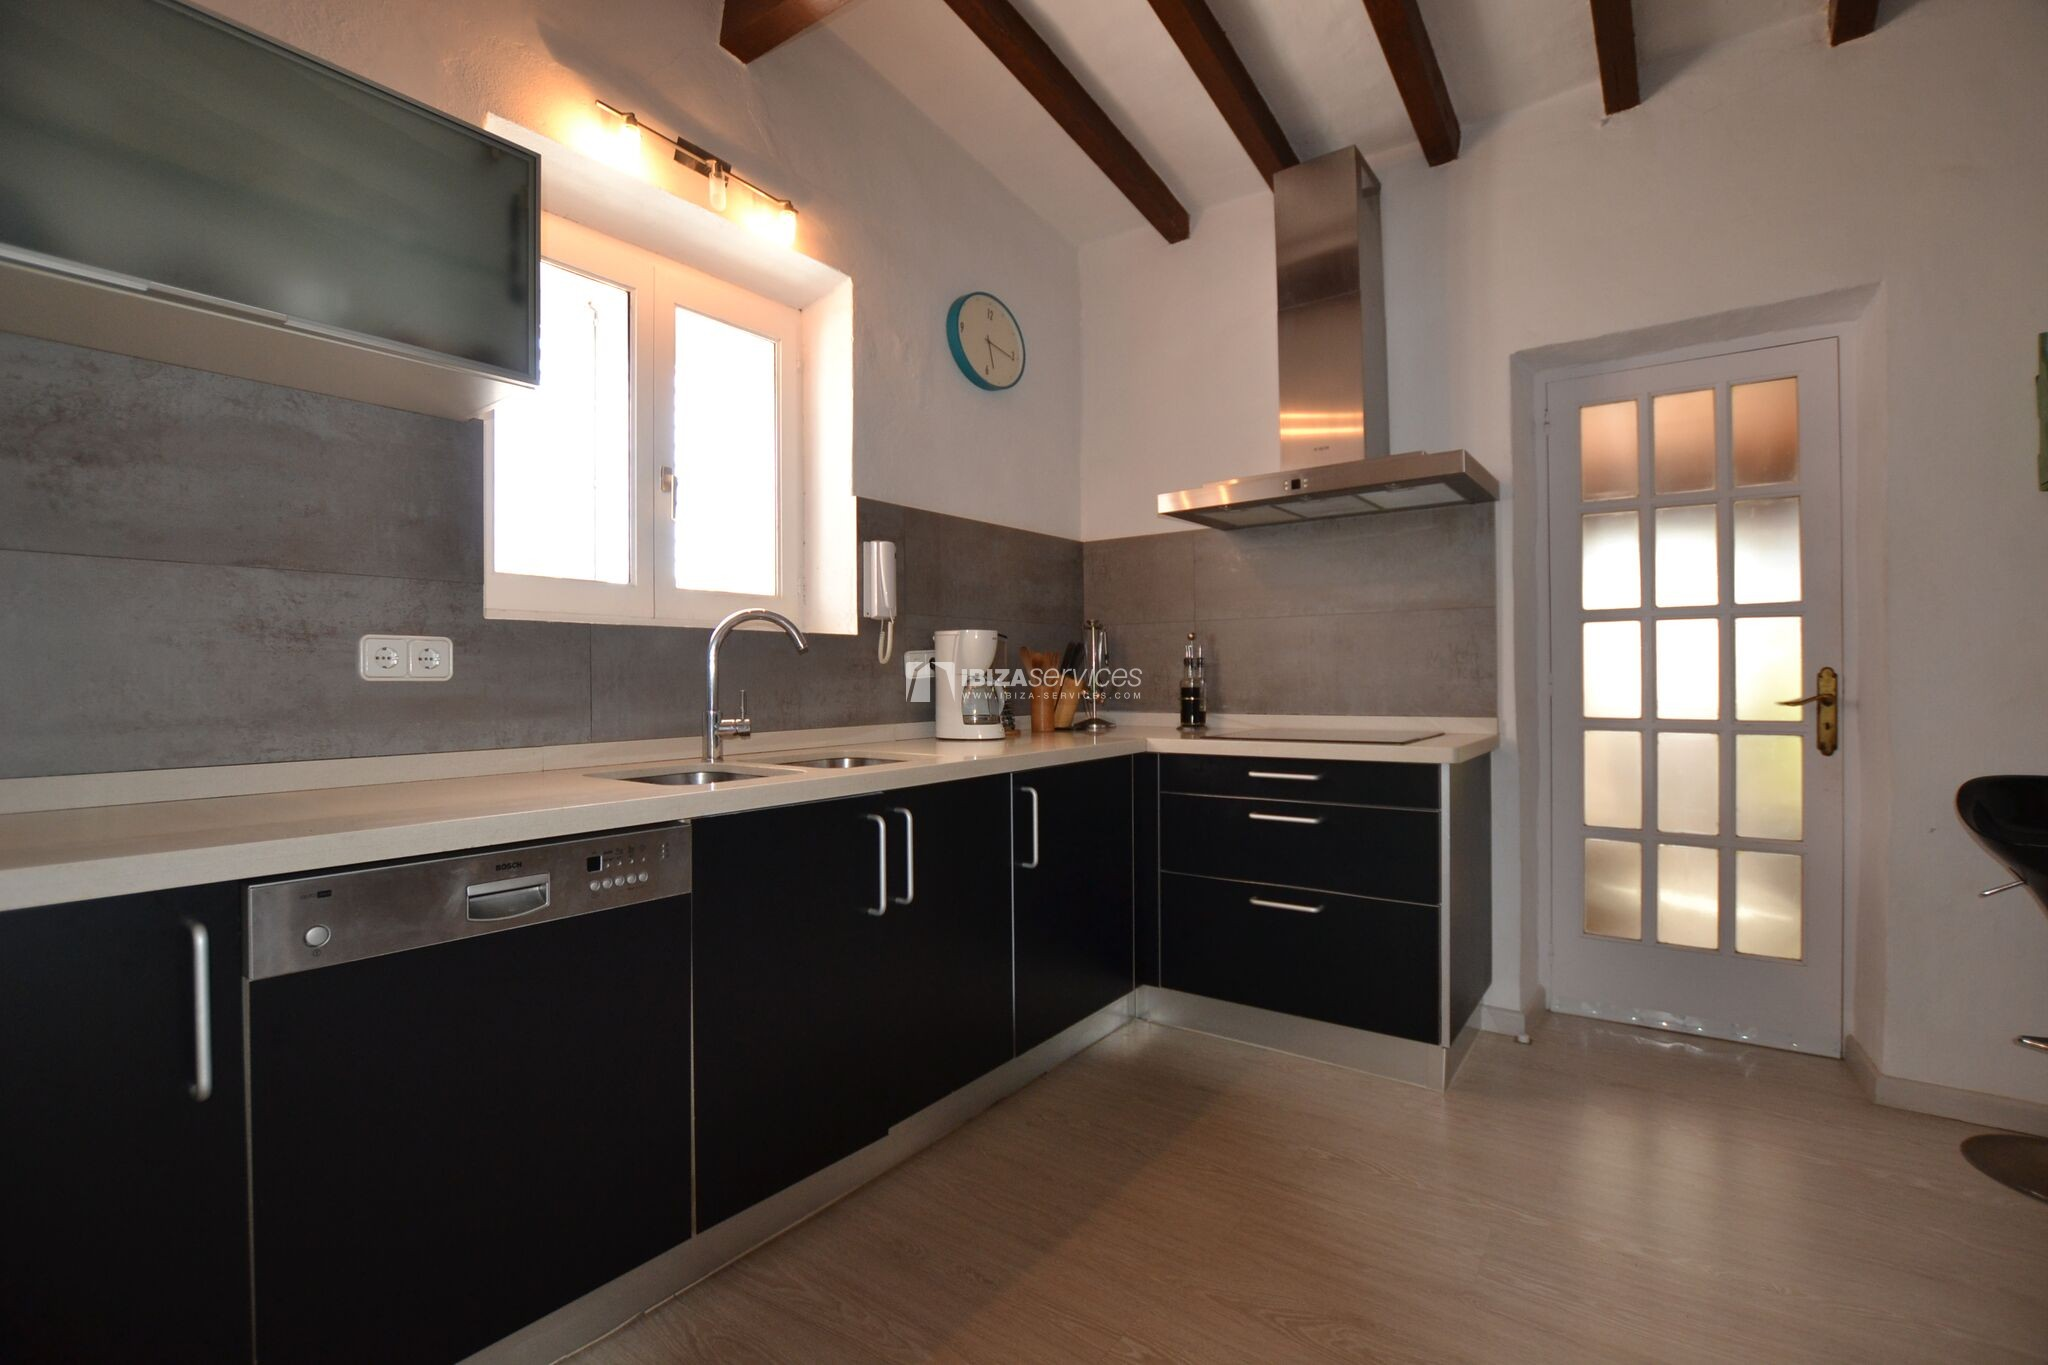 Charming house weekly rental San jordi perspectiva 20